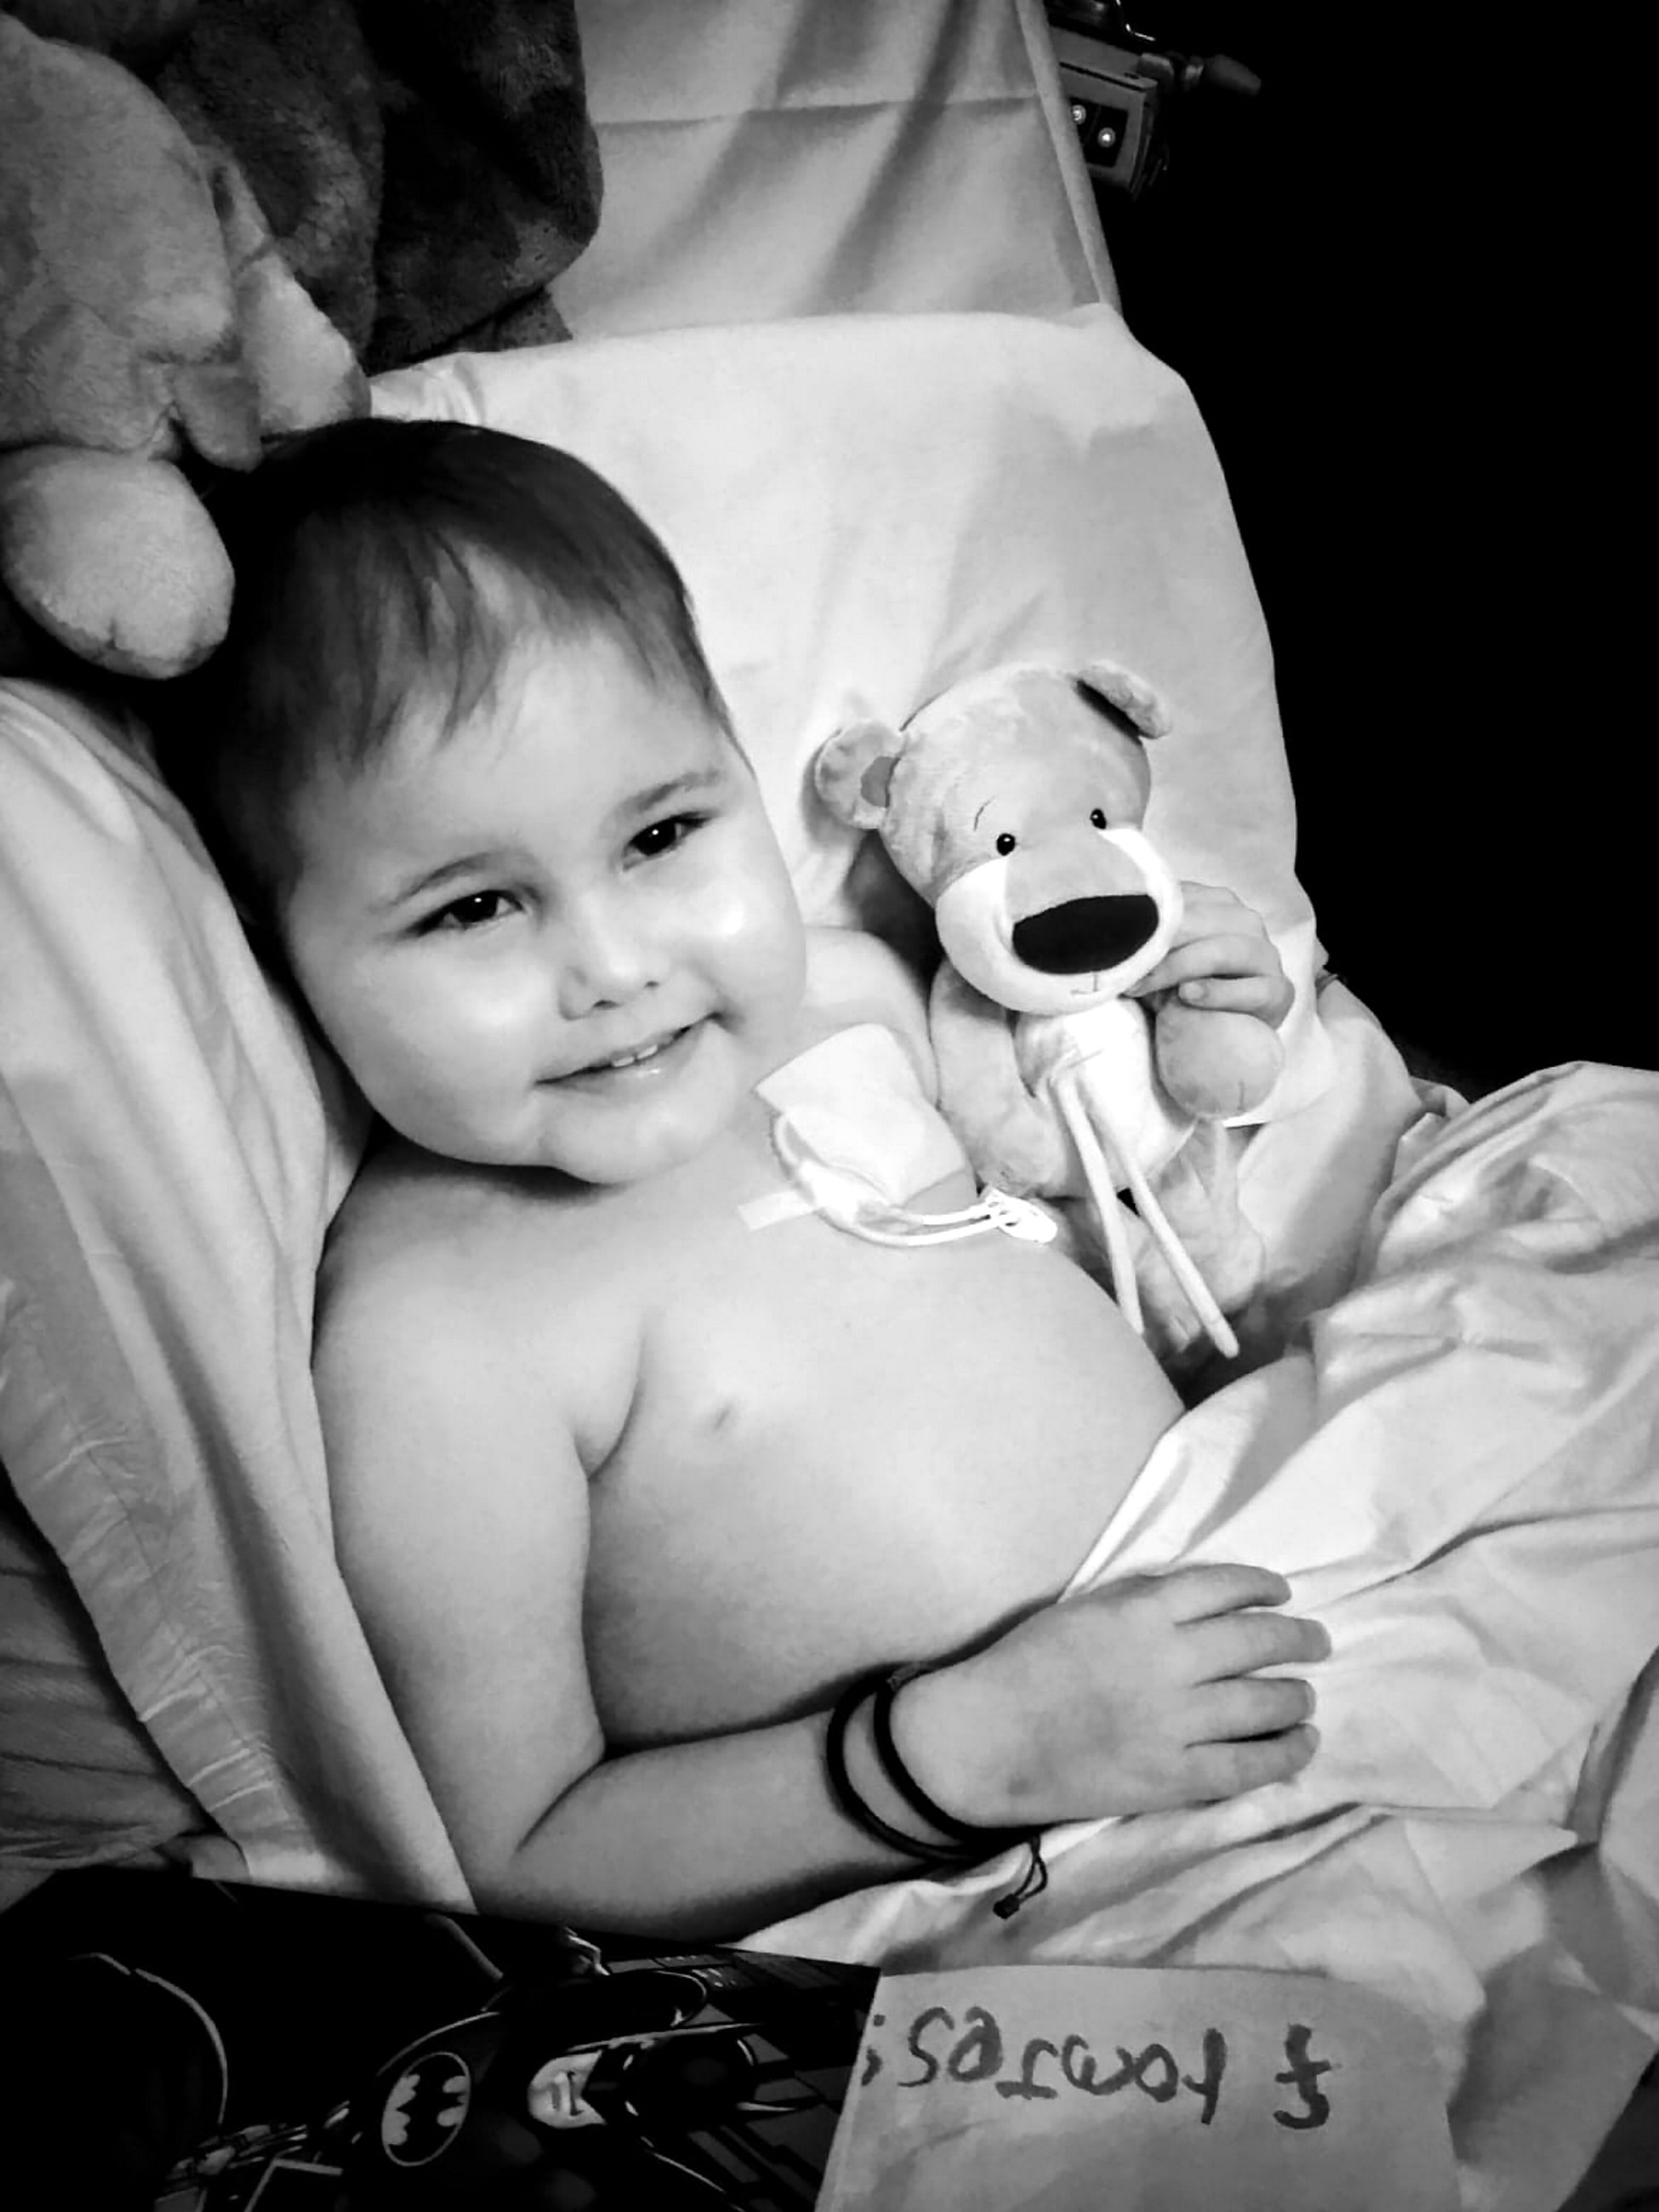 Oscar has a rare type of cancer and needs a stem cell donor. Credit: SWNS